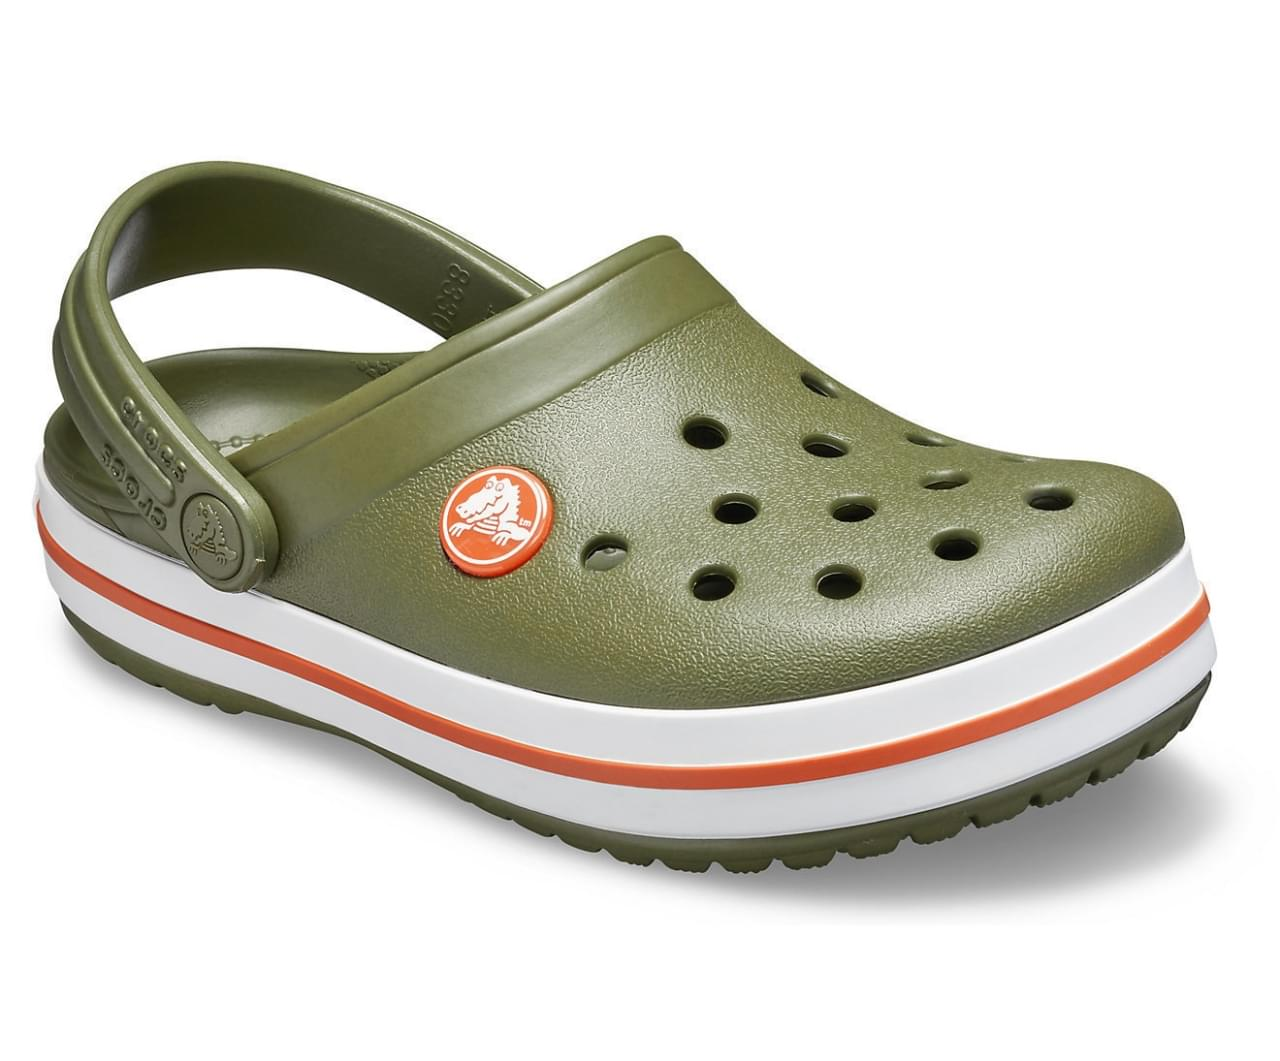 Crocs Crocband Klomp Kids